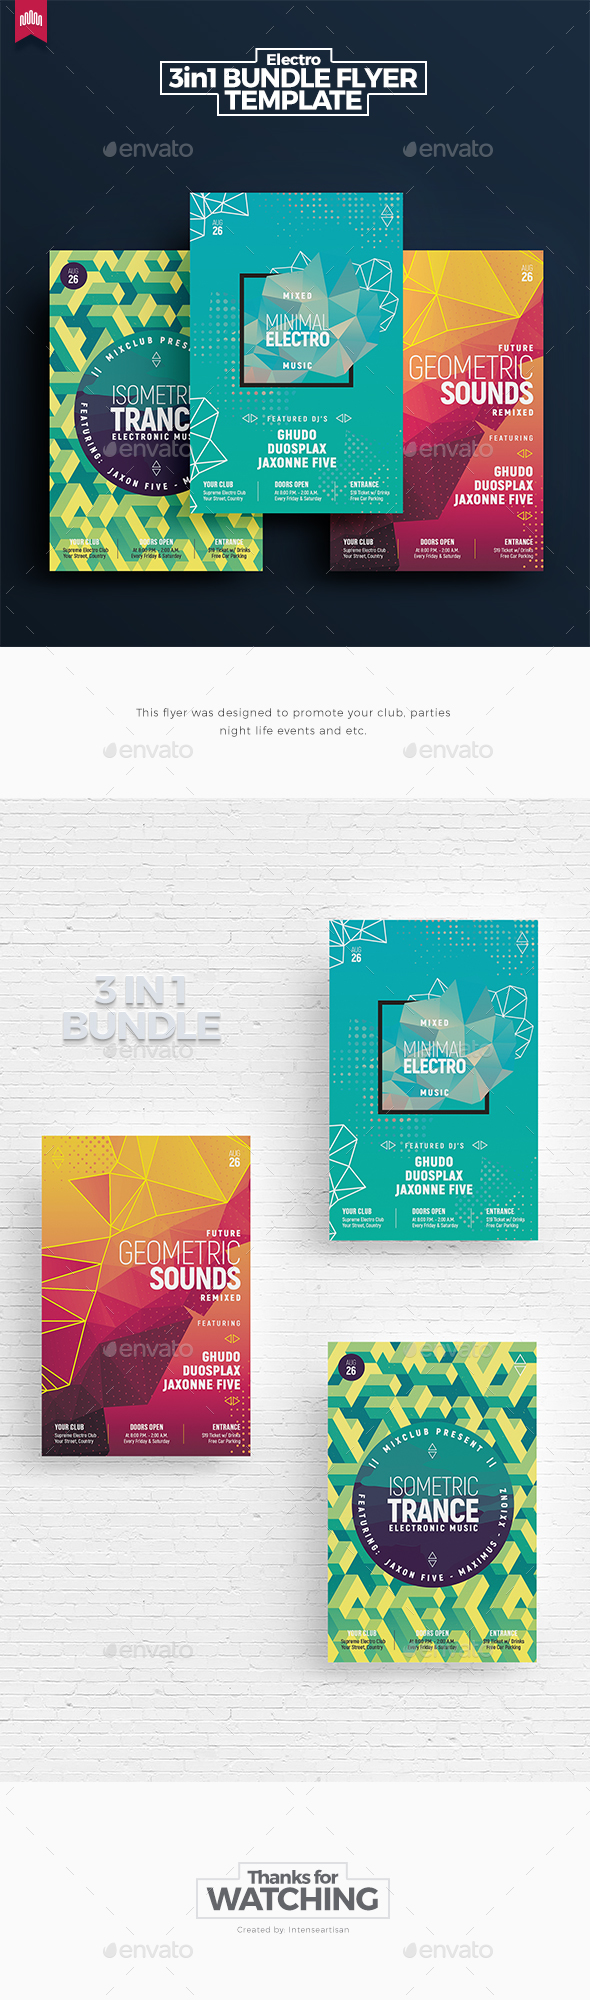 GraphicRiver Electro Bundle 8 Flyer Template 20647839